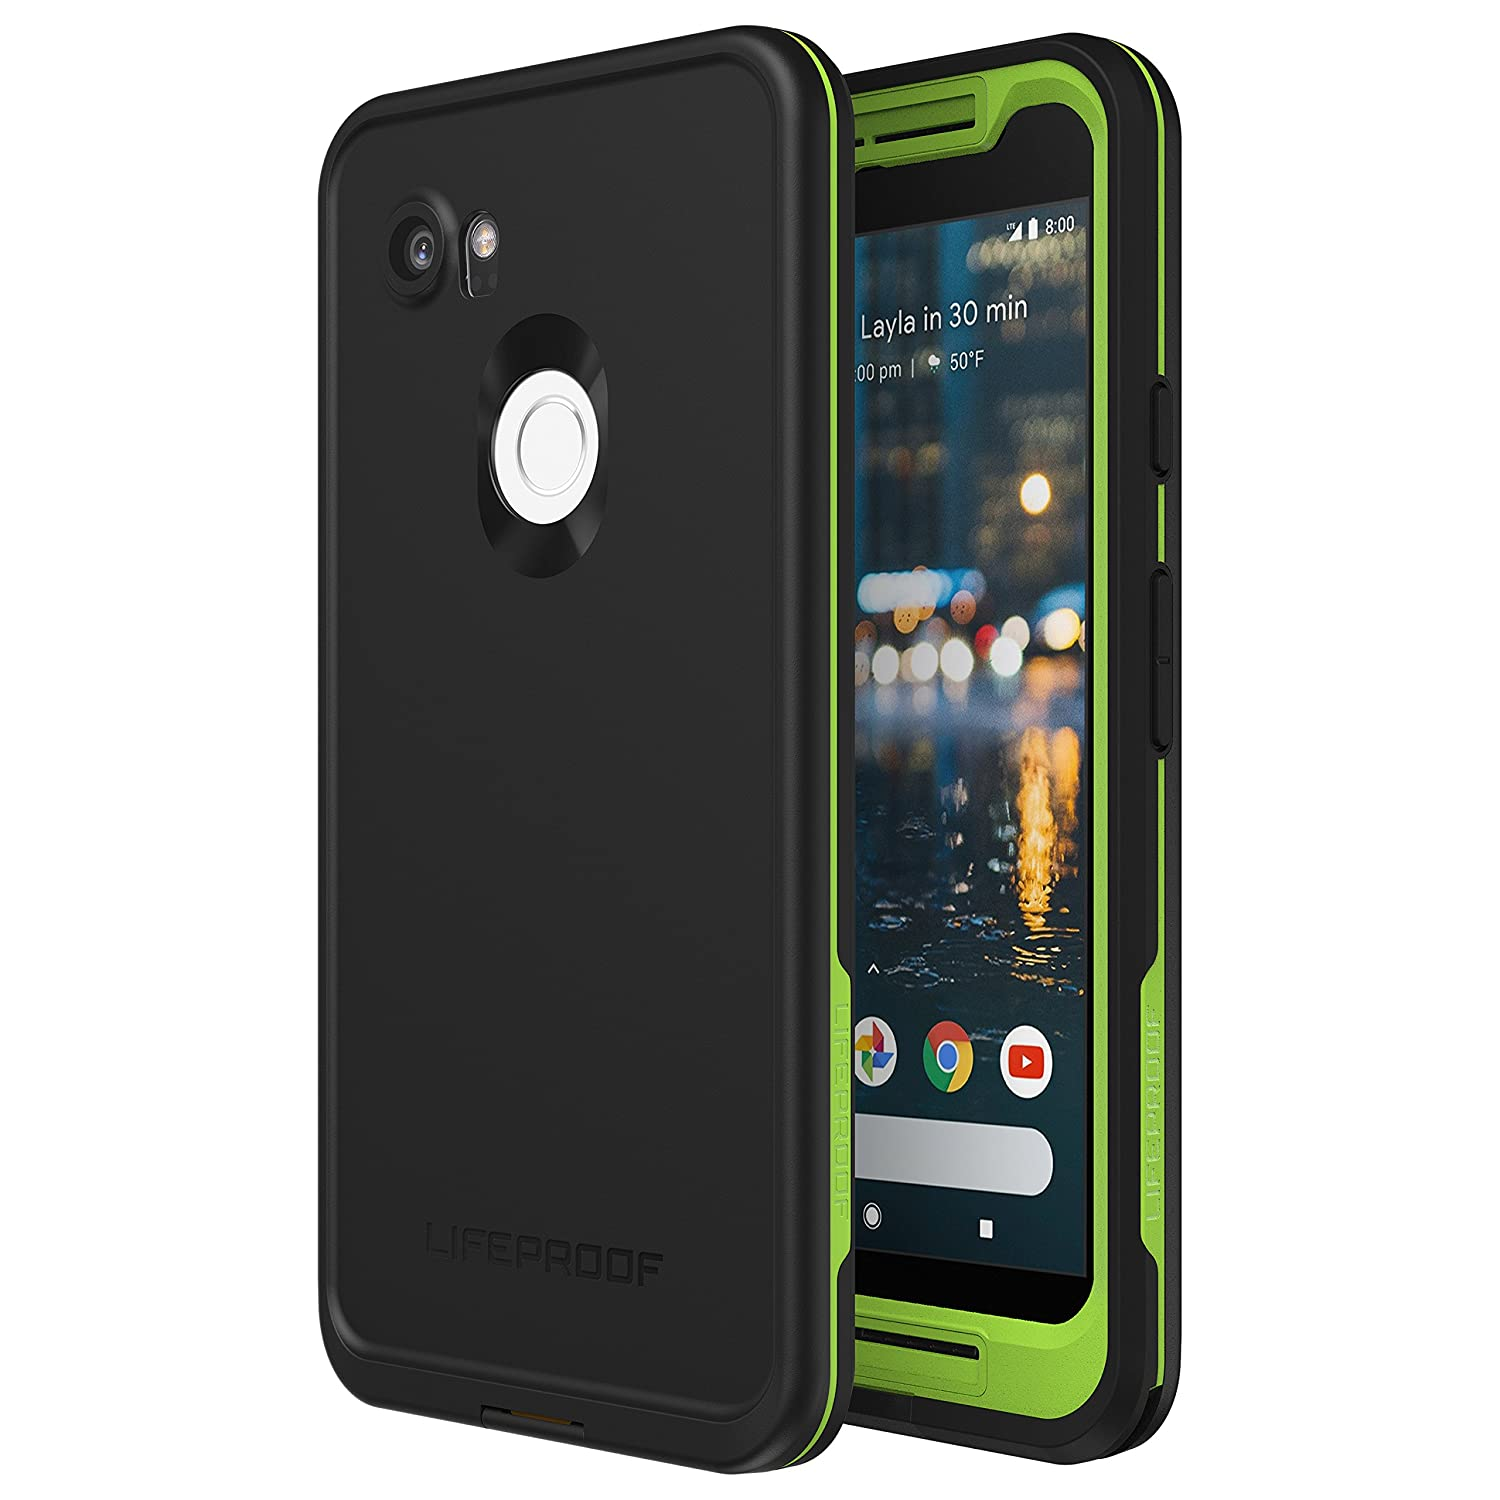 the latest d99dd ebf0e Lifeproof FRĒ Series Waterproof Case for Google Pixel 2 XL - Retail  Packaging - Night LITE (Black/Lime)